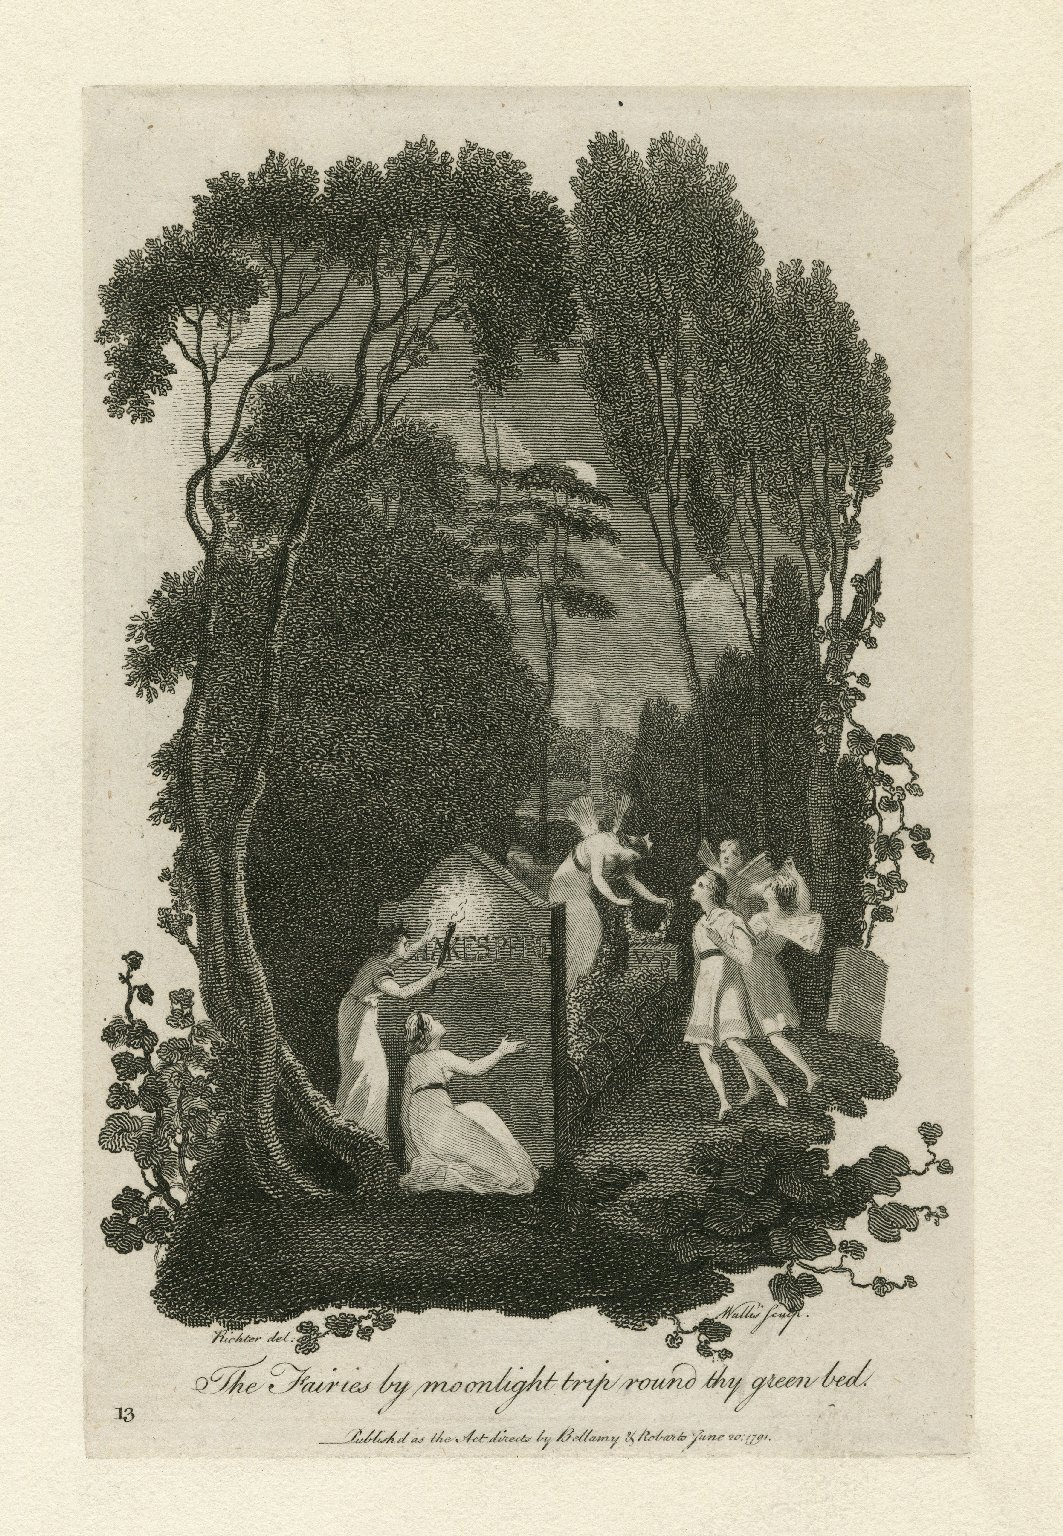 The fairies by moonlight trip round thy green bed [graphic] : [the tomb of Shakespeare] / Richter del. ; Wallis sculp.